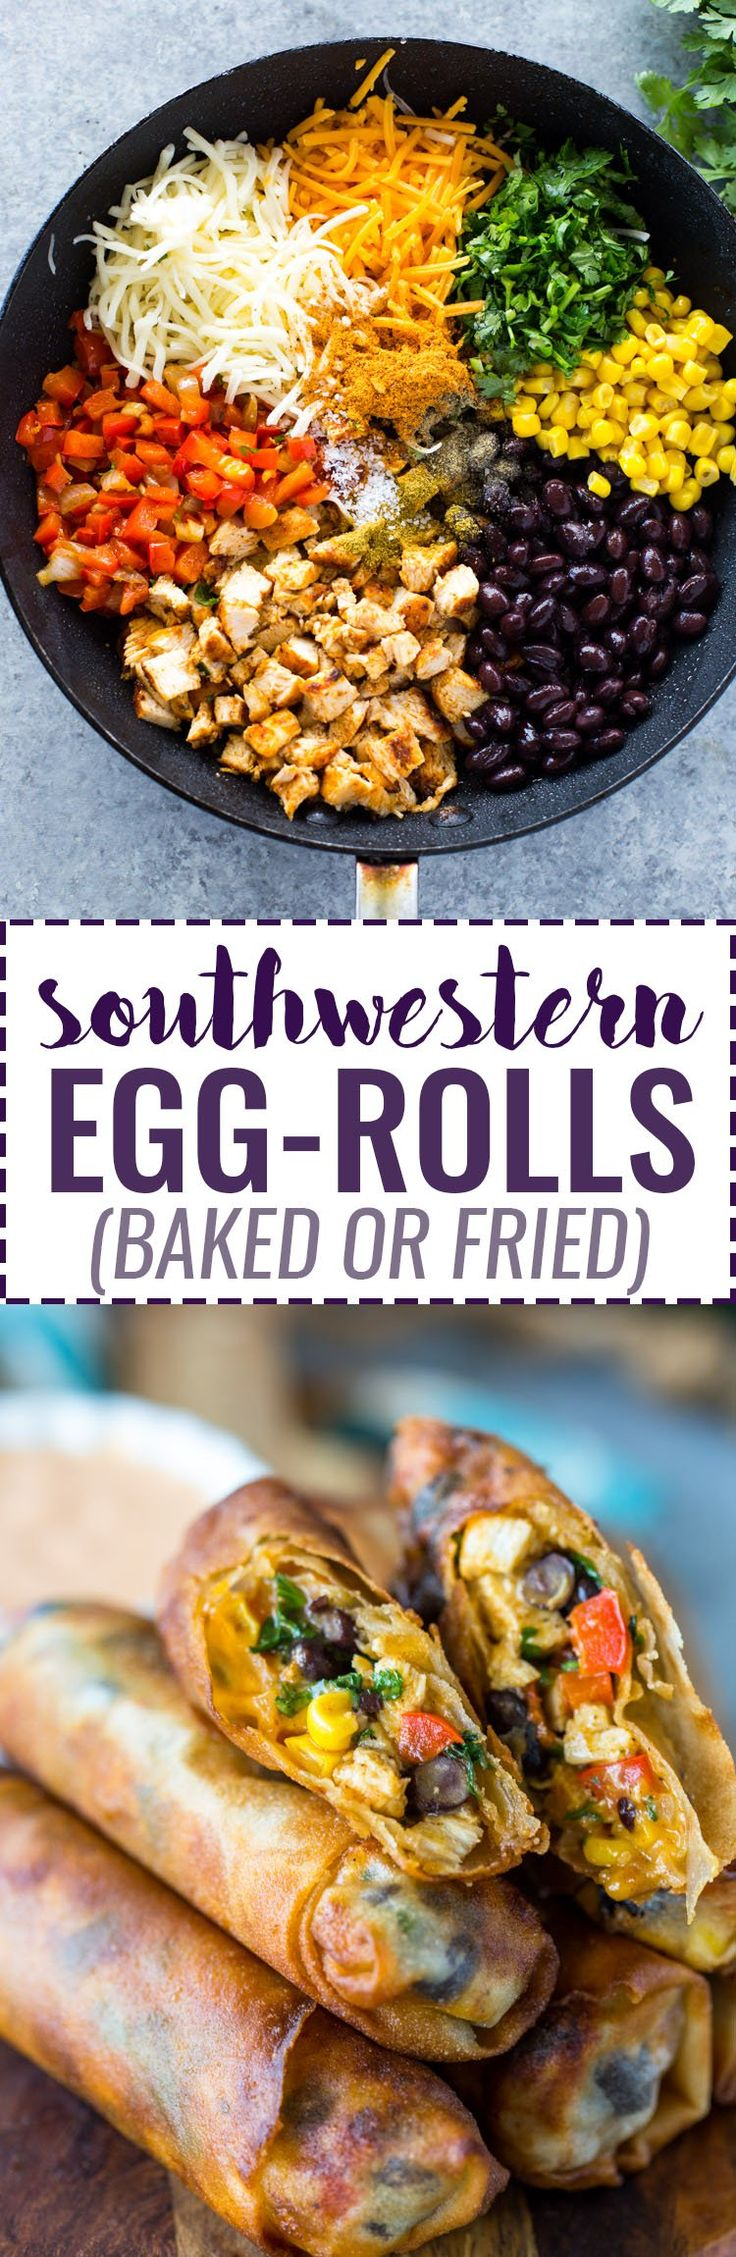 Southwestern Egg Rolls (Baked or Fried)  How to Freeze